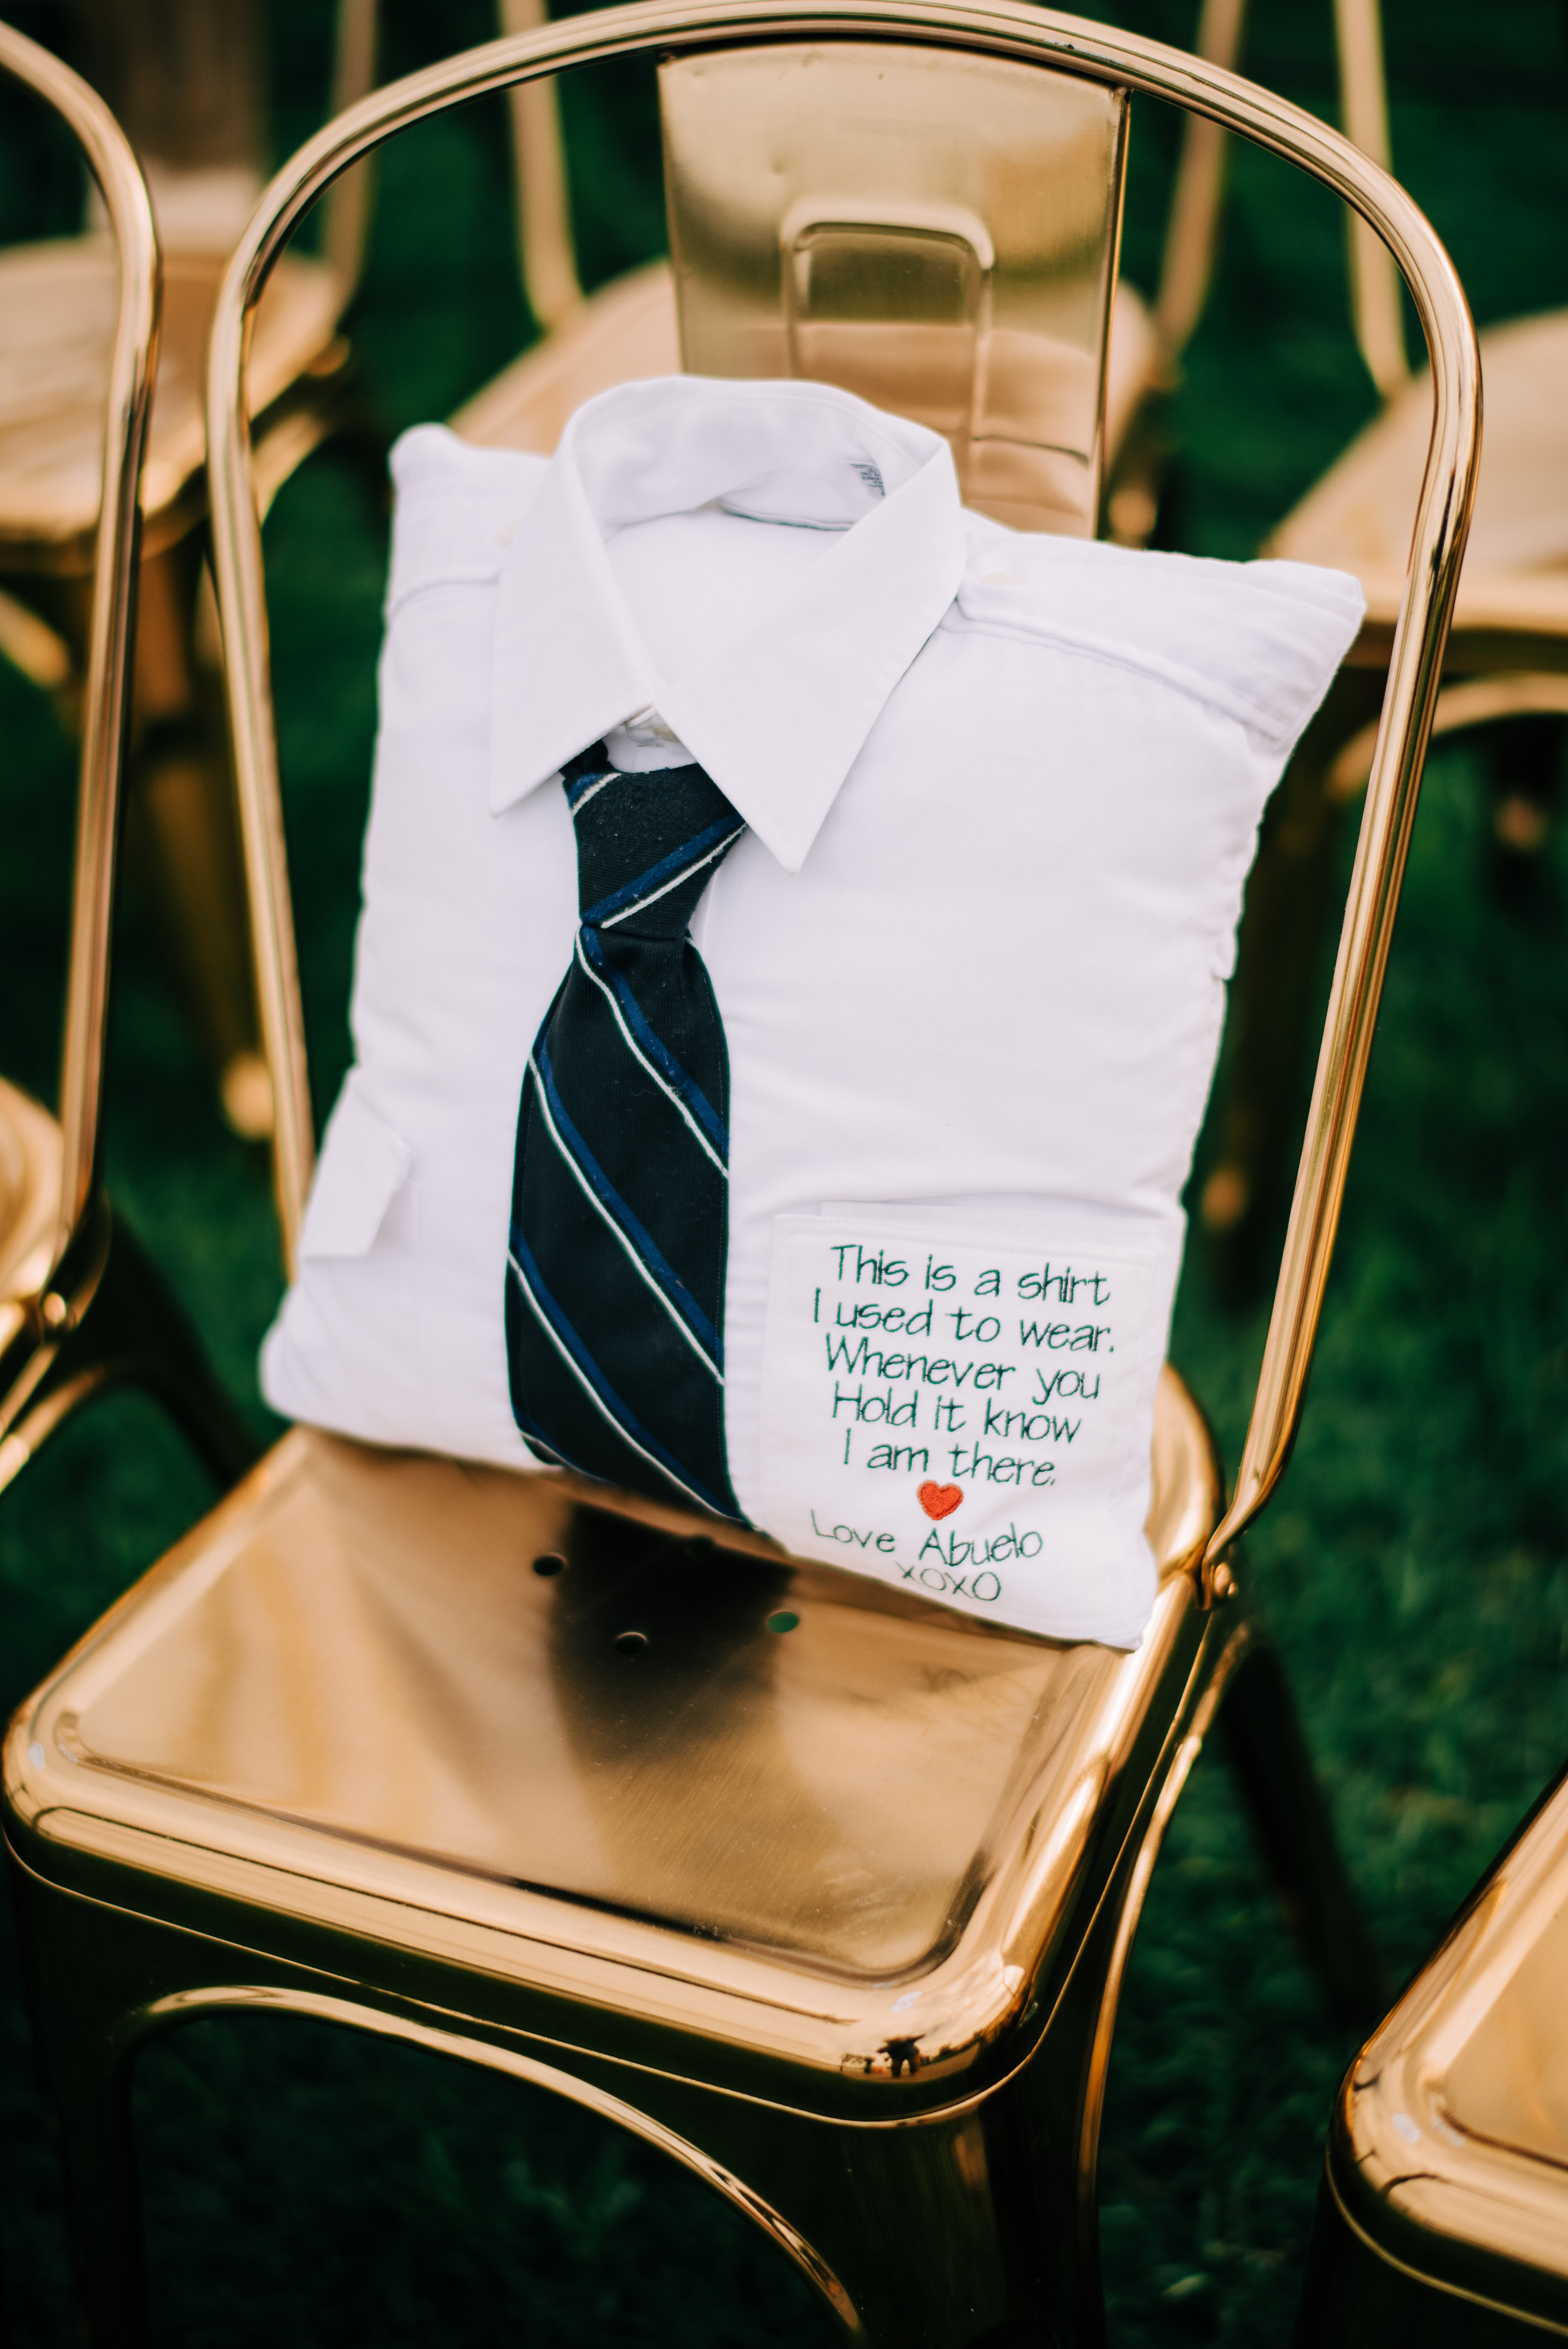 19 wedding remember loved ones honor family members that died bride honors dad wedding rememberance Life Design Events photos by Josh Snyder Photography.jpg